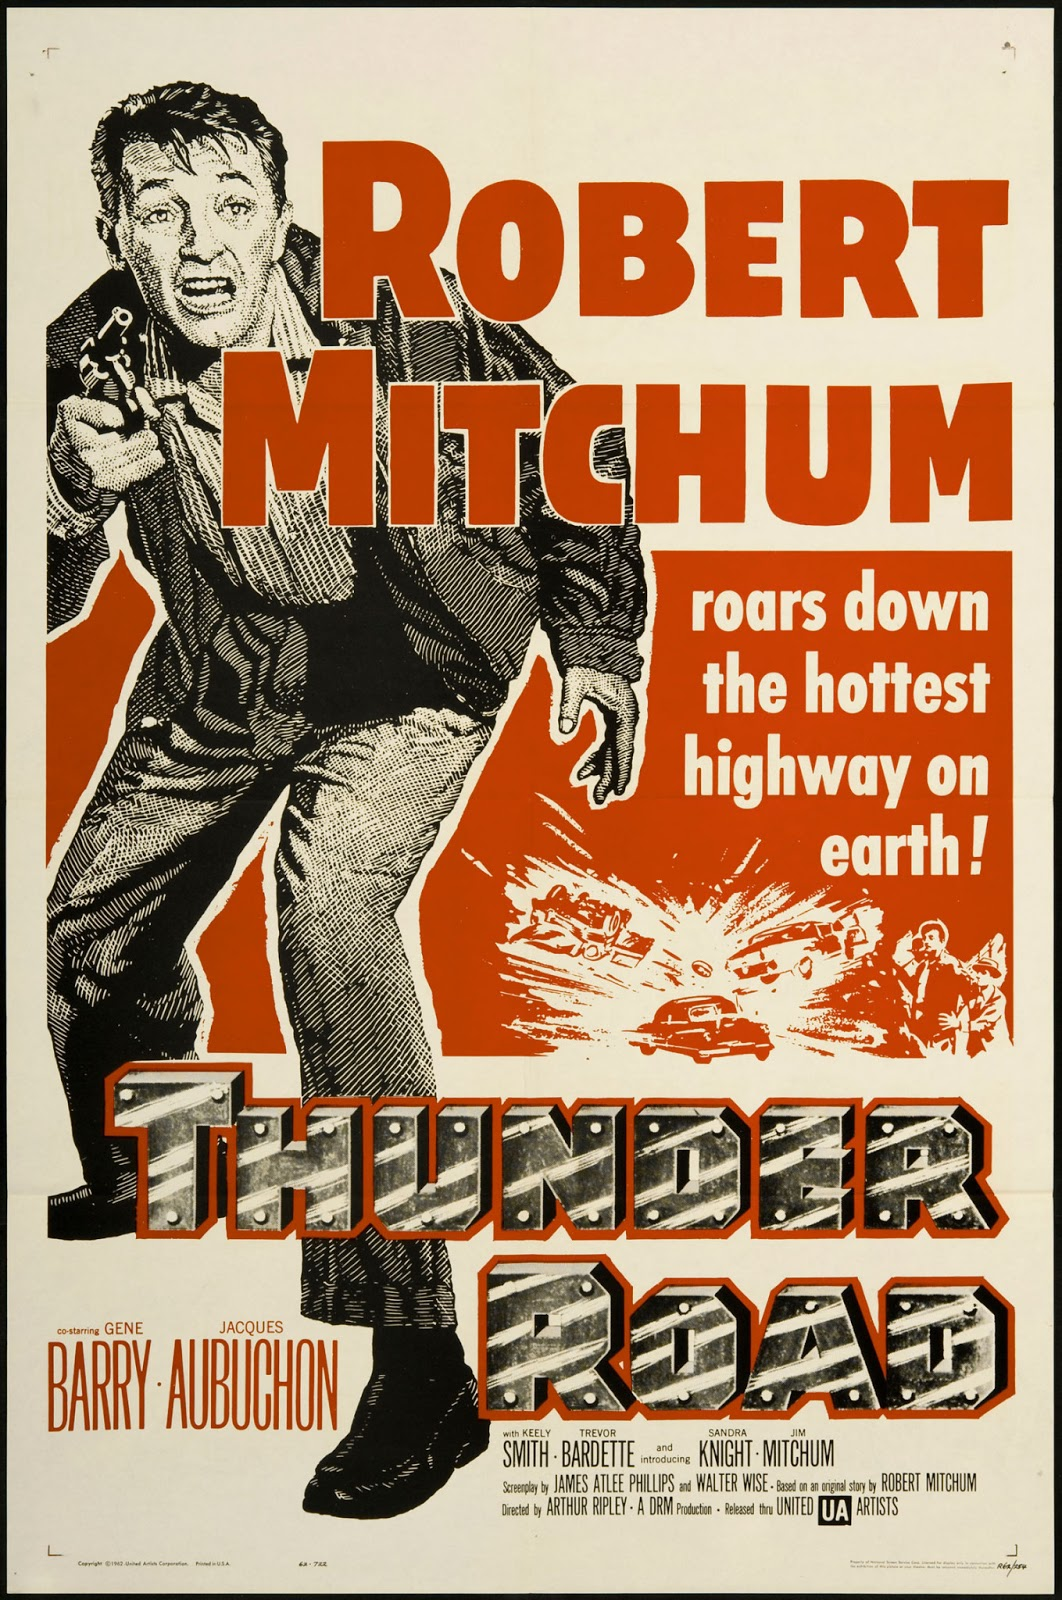 GONNA PUT ME IN THE MOVIES: THUNDER ROAD